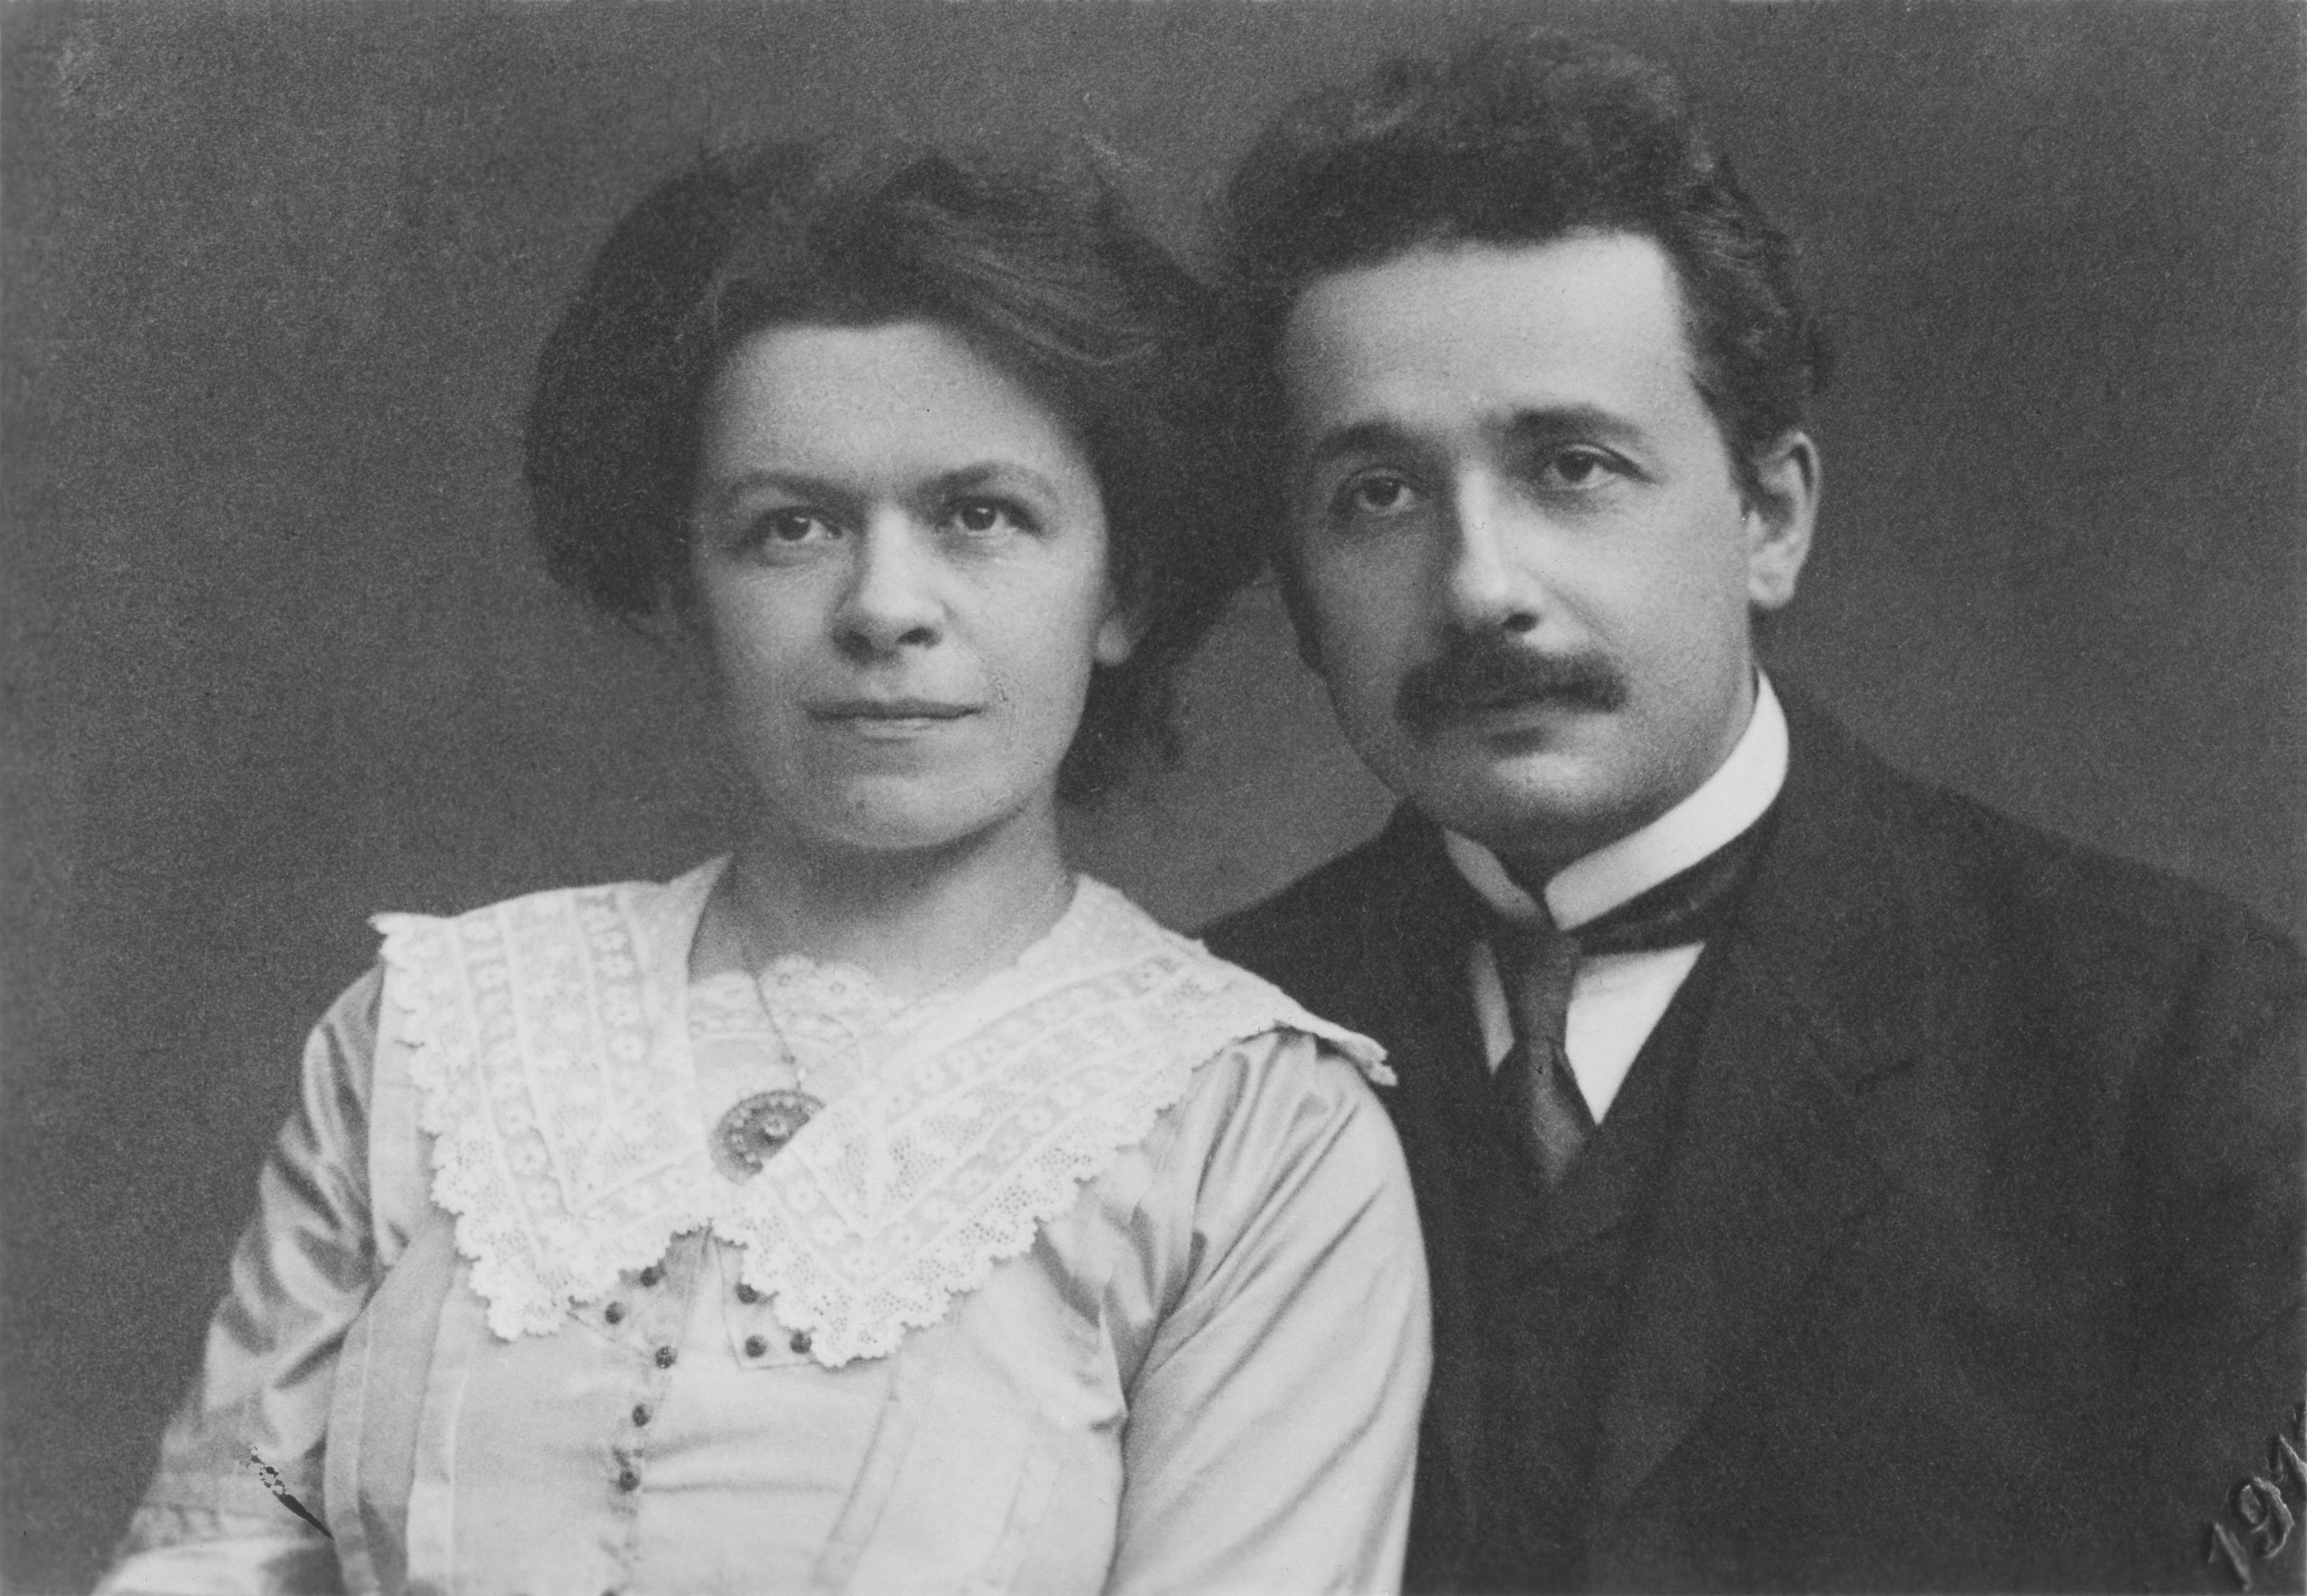 http://upload.wikimedia.org/wikipedia/commons/8/87/Albert_Einstein_and_his_wife_Mileva_Maric.jpg